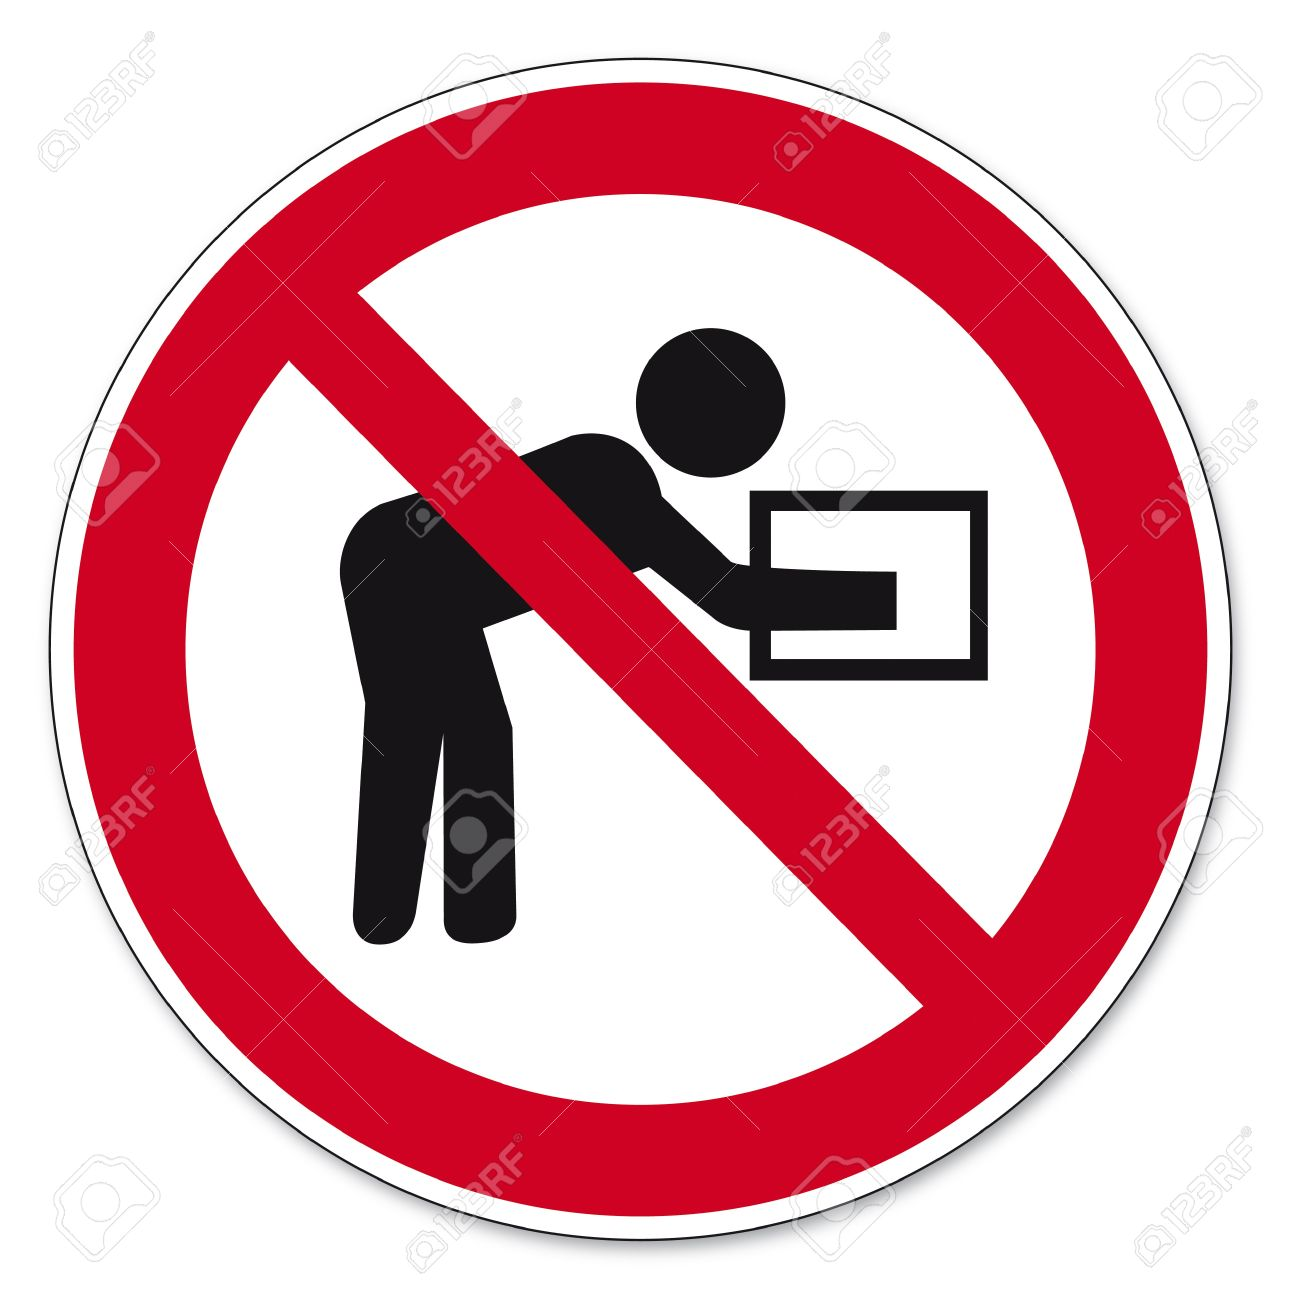 Prohibition signs BGV icon pictogram Performing such lifting operations prohibited Stock Vector - 14516816